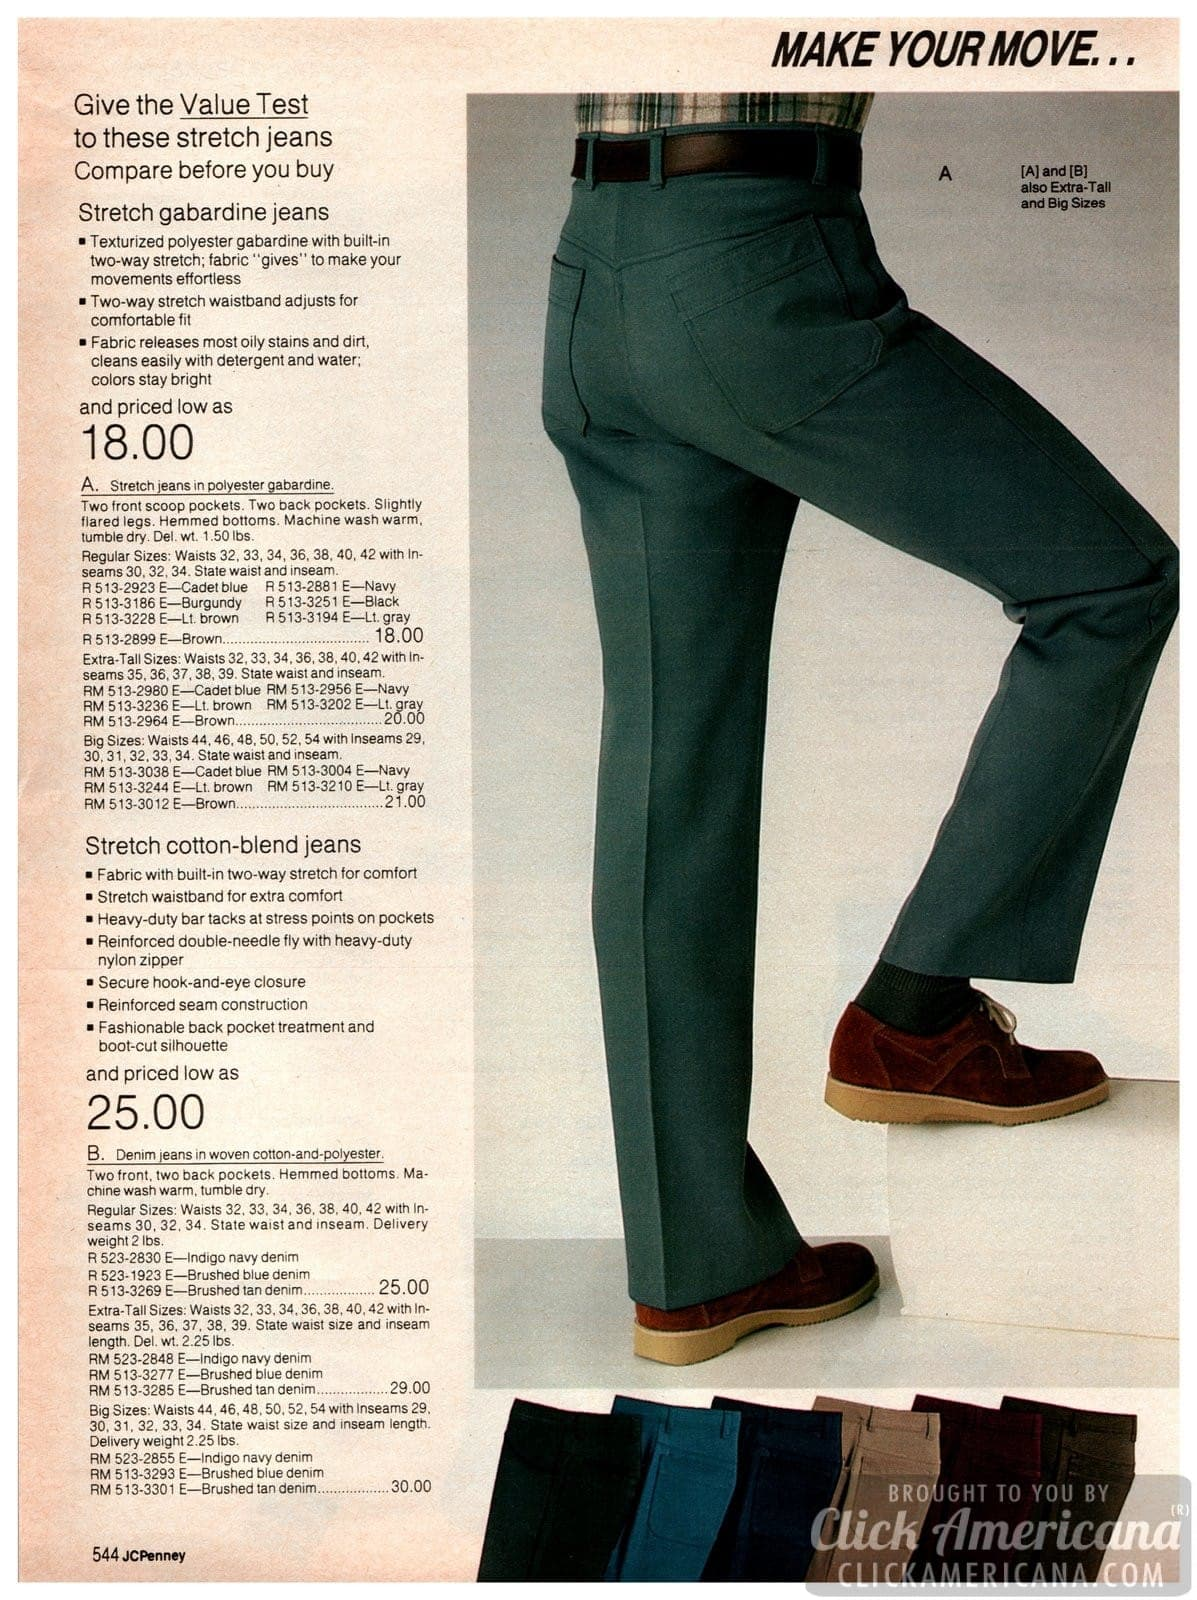 Stretch polyester gabardine jeans with slightly-flared legs, plus stretch cotton-blend jeans with zipper fly